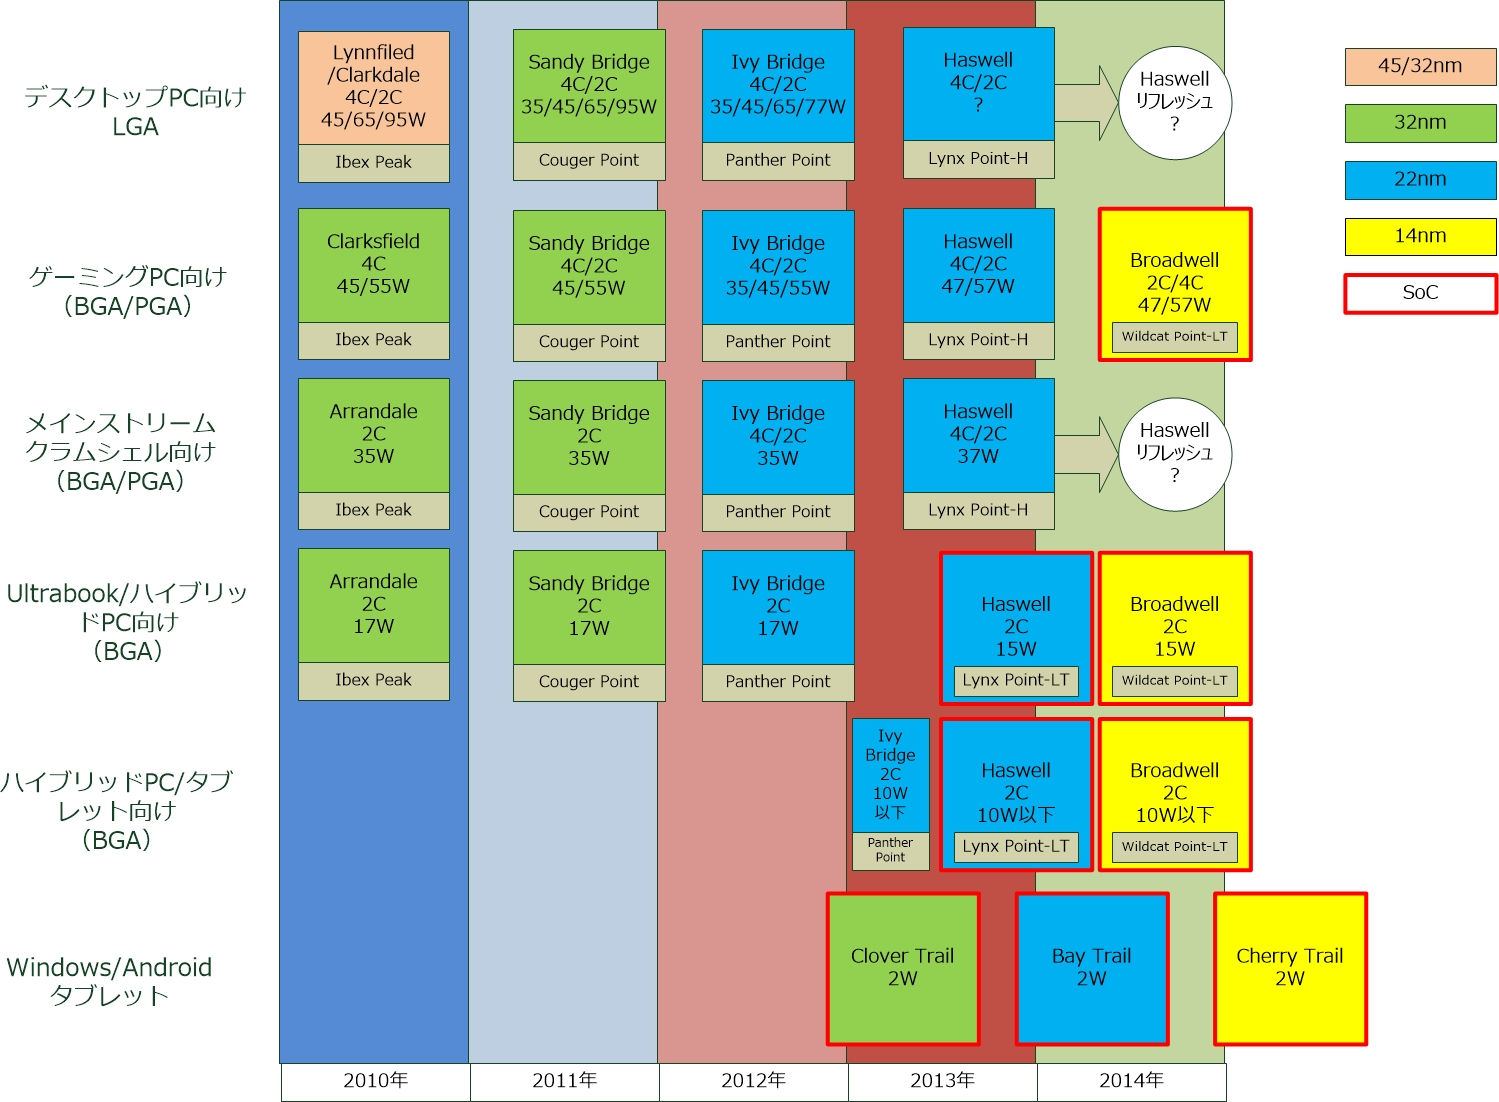 Intel Broadwell: SoC da 14nm per il 2014